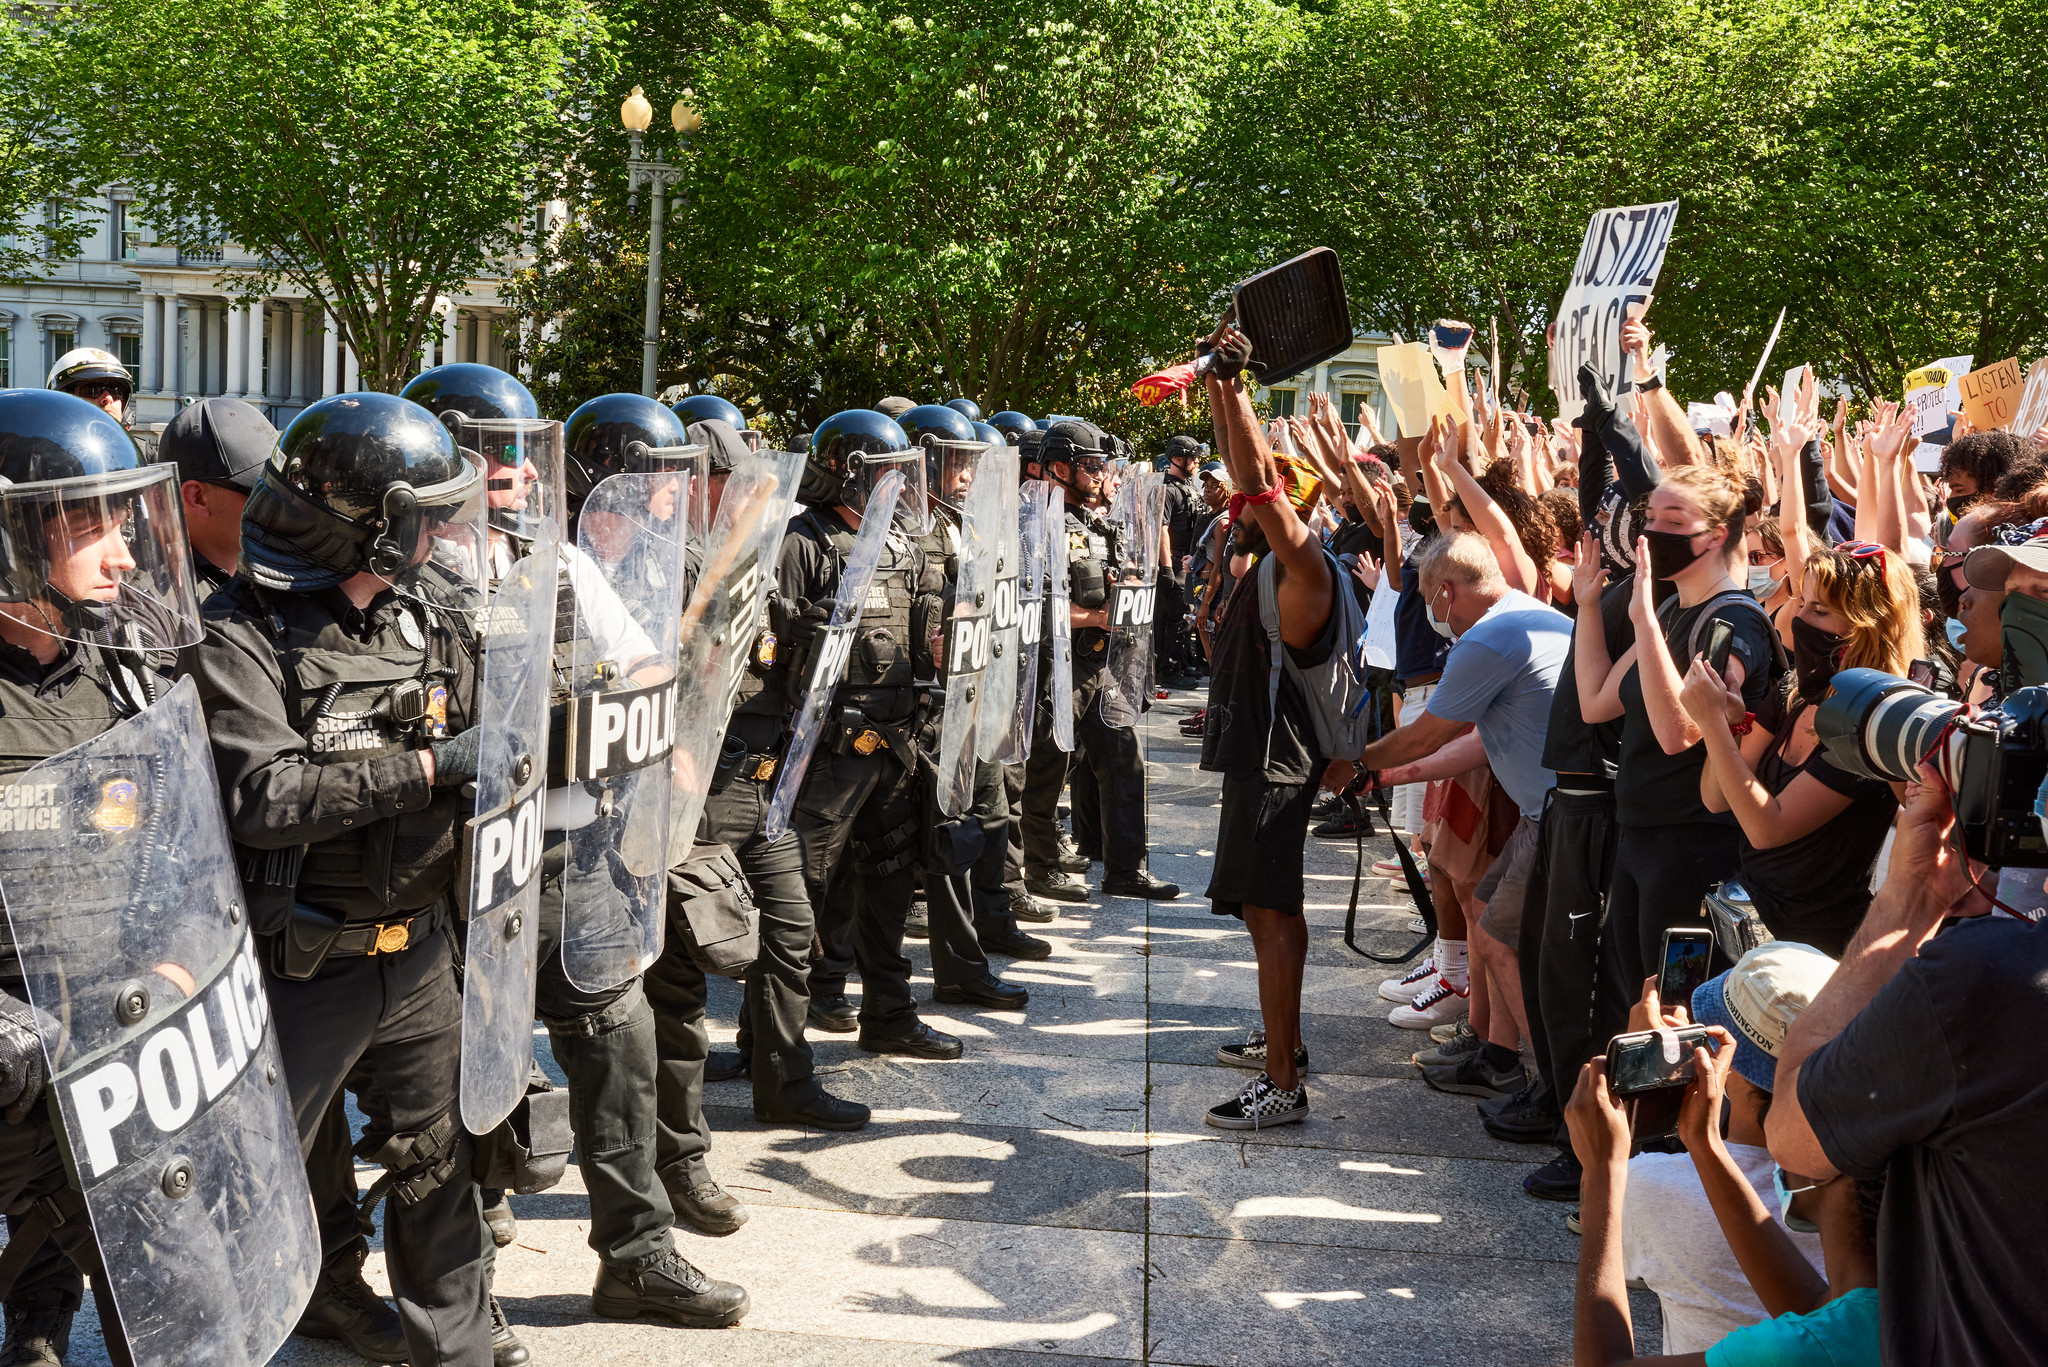 Police and protesters in a standoff in Washington, D.C.